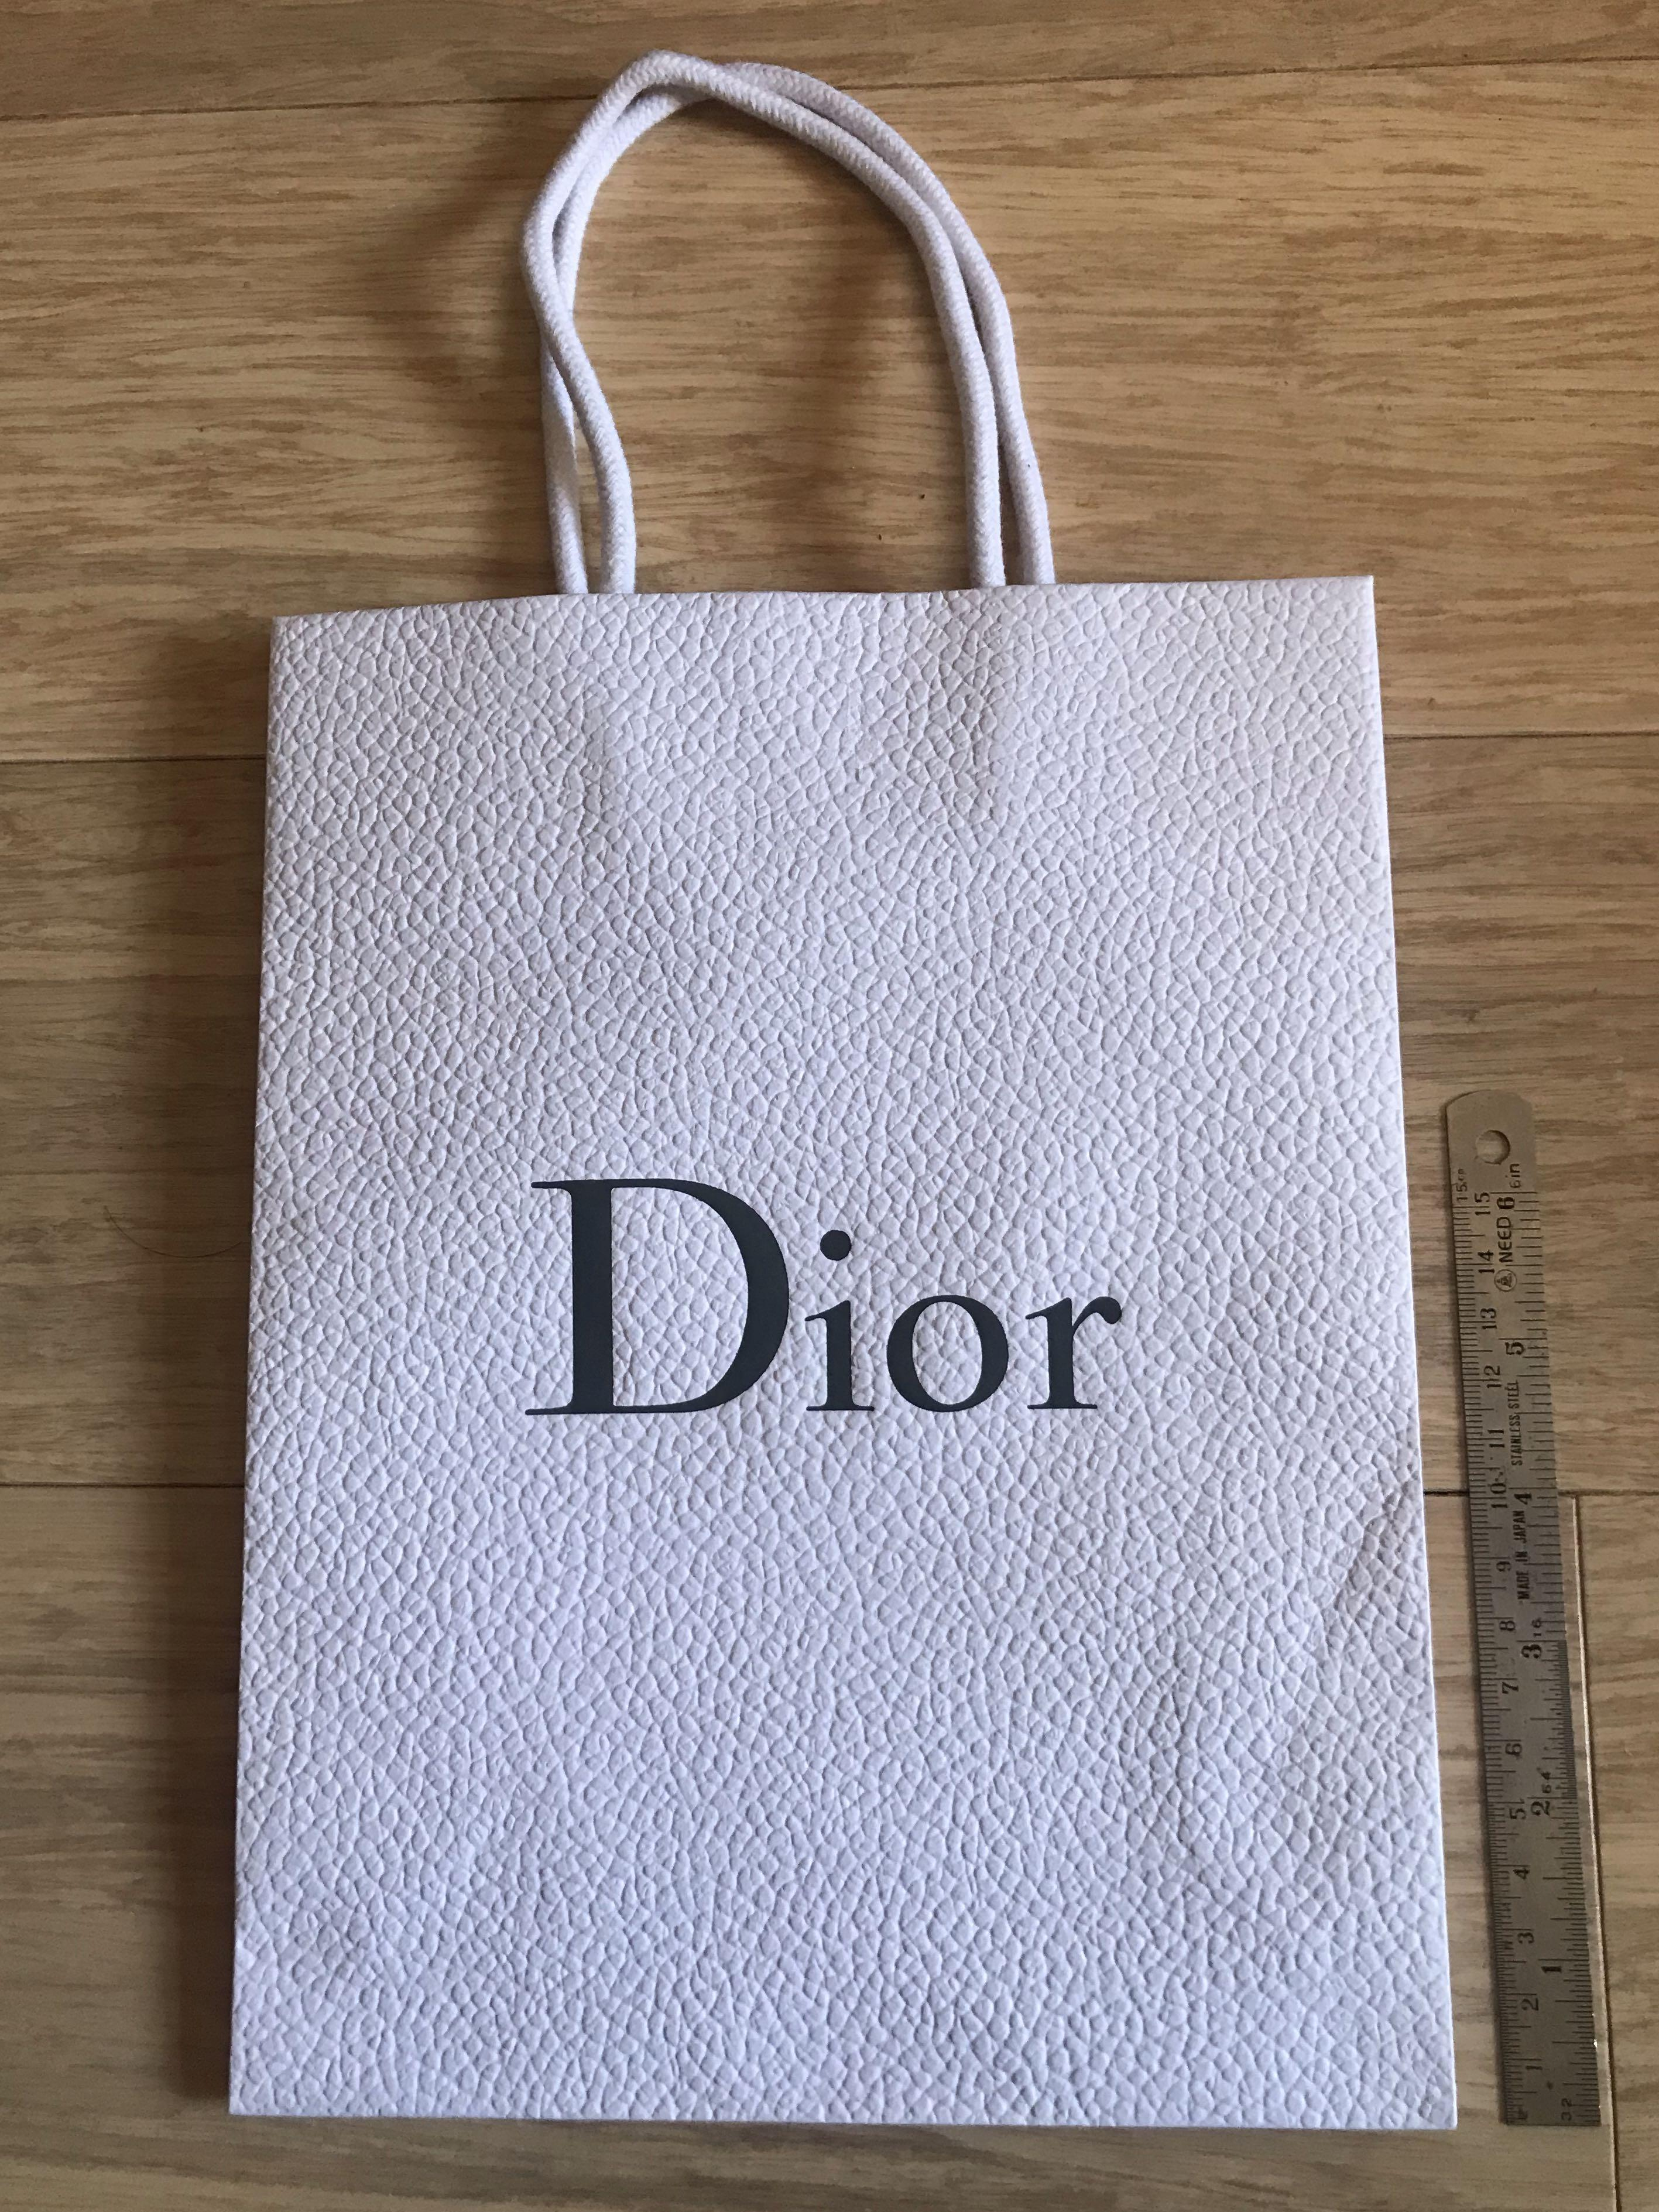 Dior paper bag (empty / as new - originally used for packaged wallet)